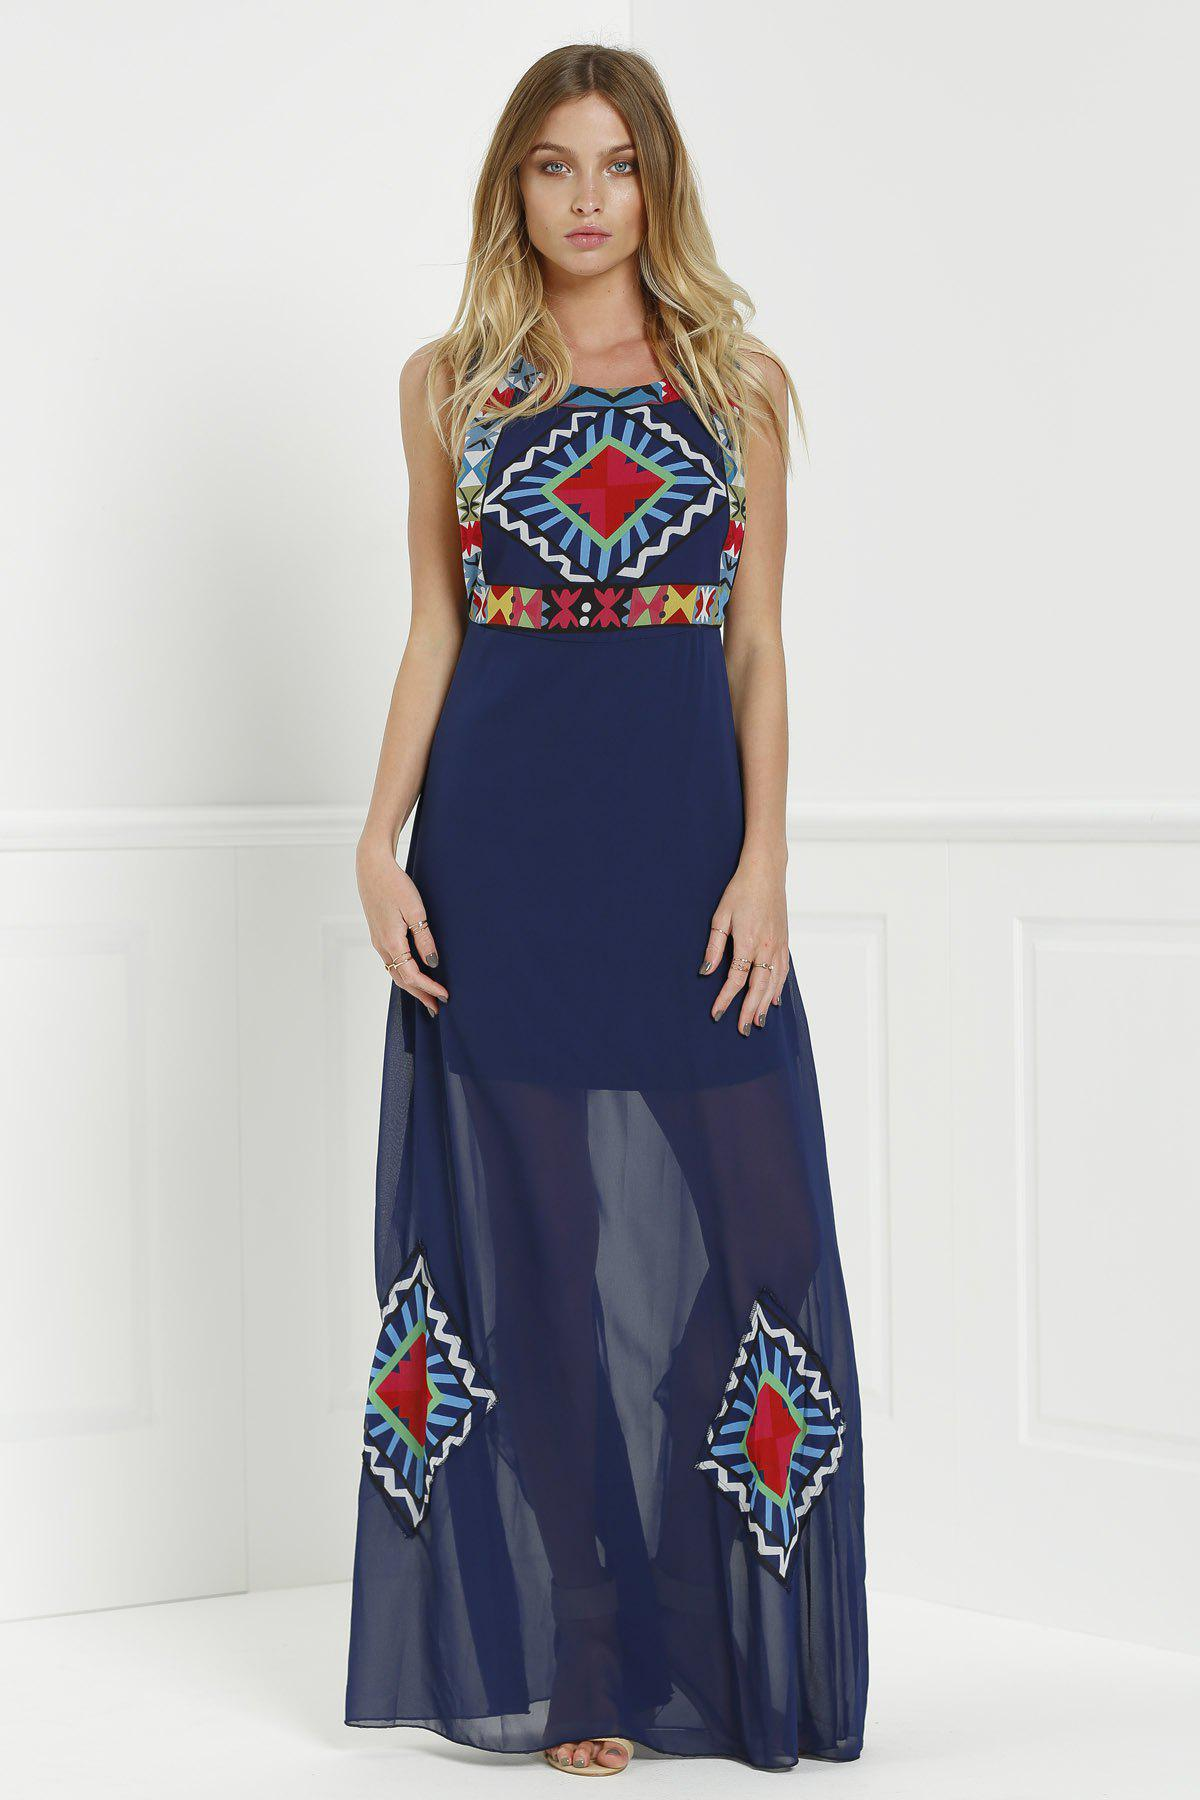 Bohemian Style Jewel Neck Floral Print Color Block Sleeveless Maxi Dress For Women - PURPLISH BLUE M